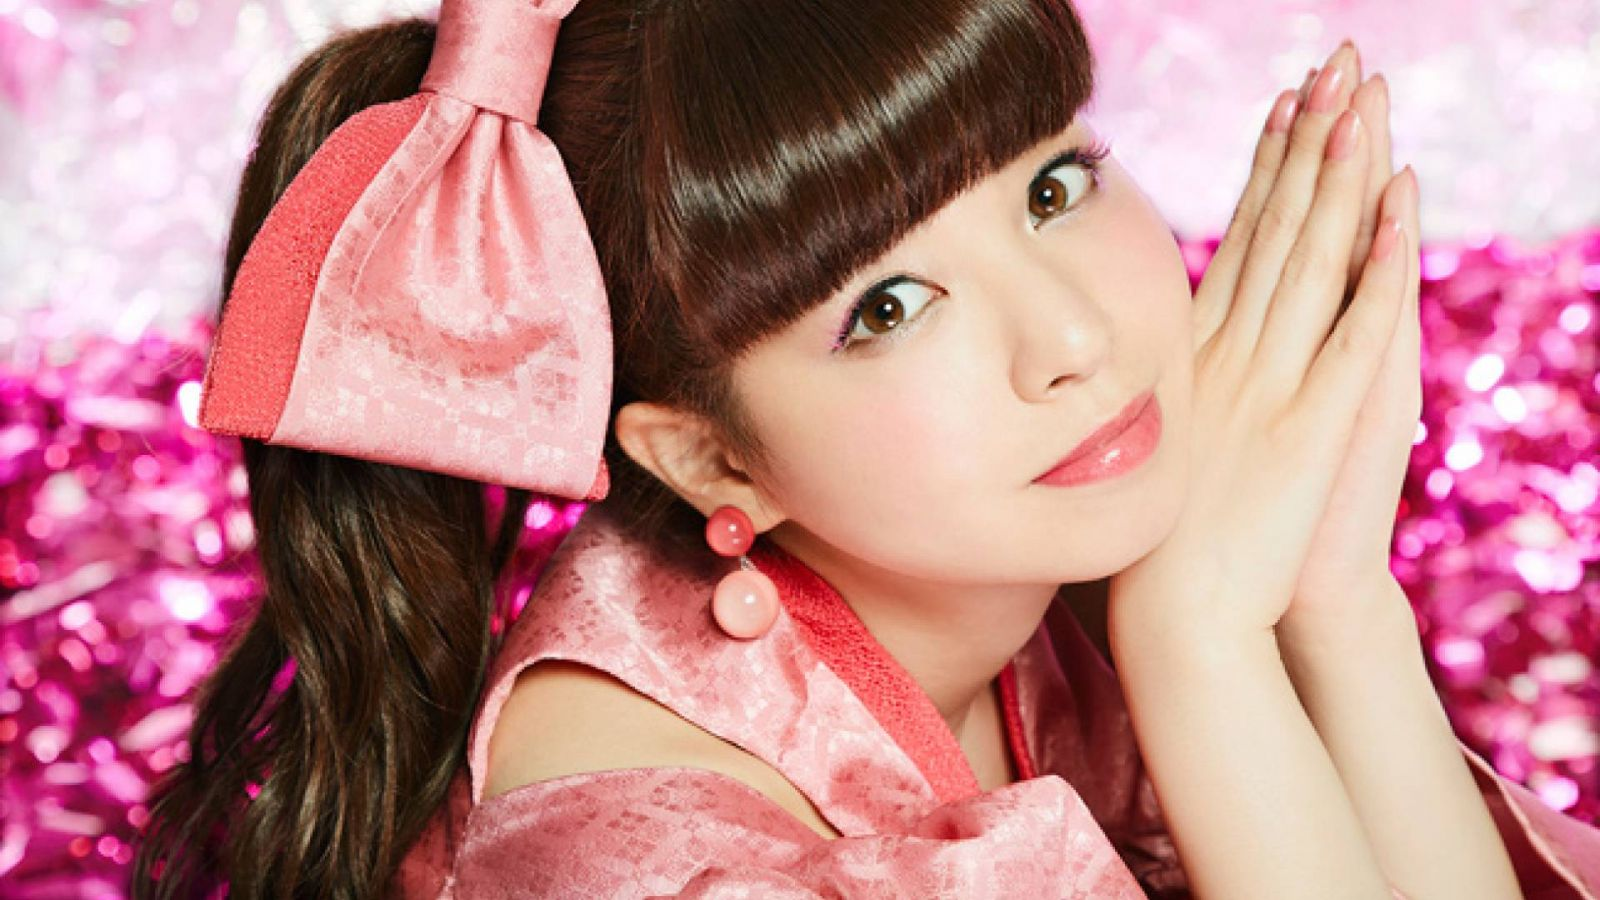 Haruna Luna © 2018 Sony Music Entertainment (Japan) Inc. All rights reserved.